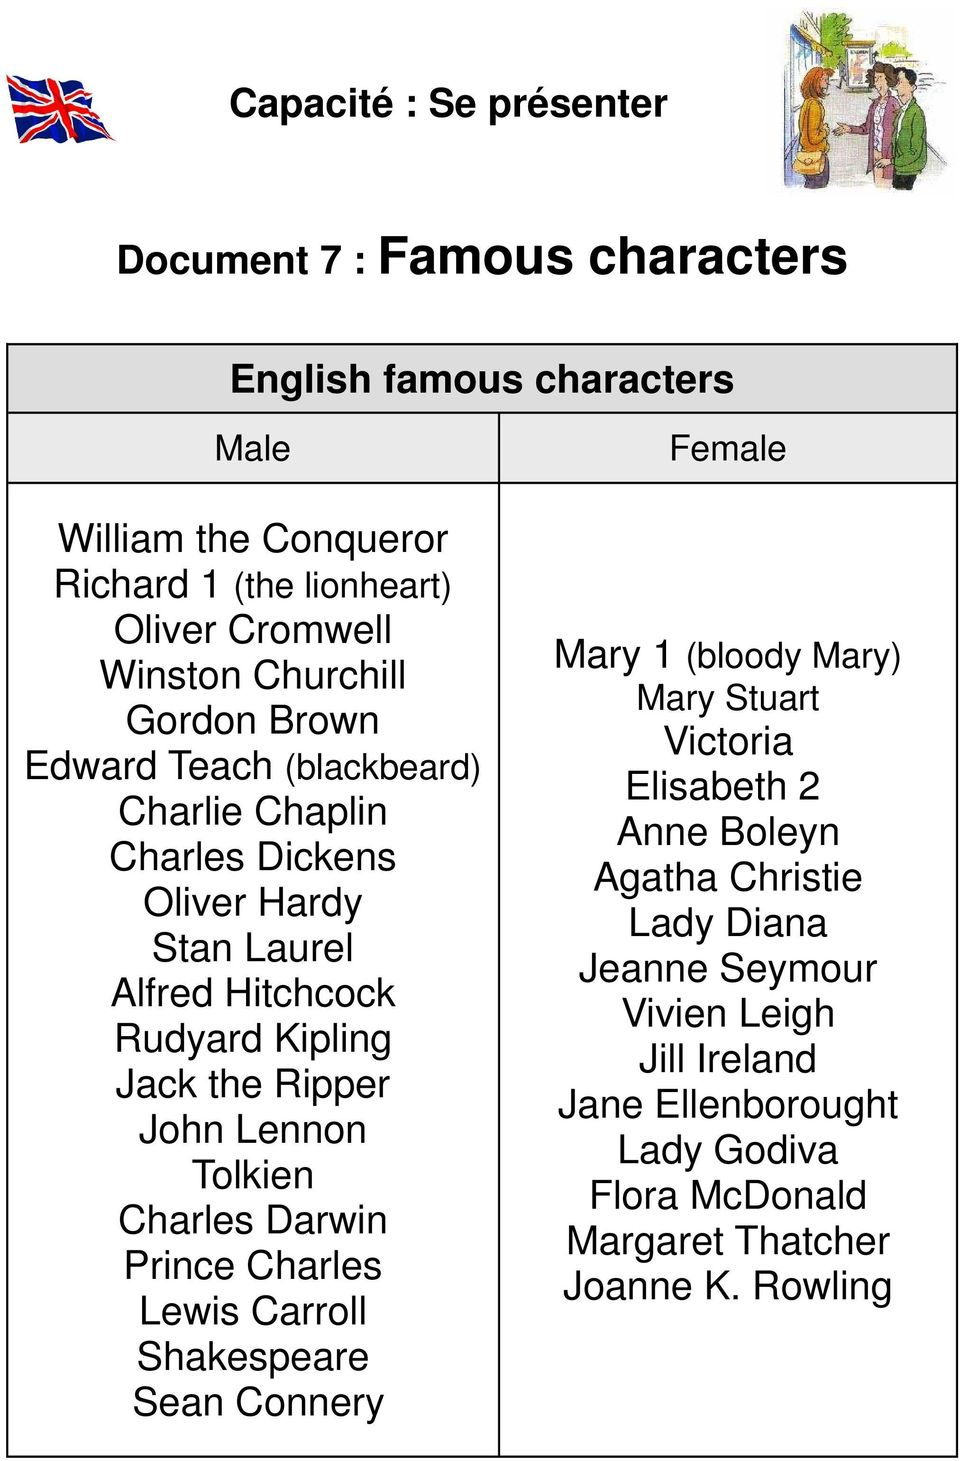 Ripper John Lennon Tolkien Charles Darwin Prince Charles Lewis Carroll Shakespeare Sean Connery Female Mary 1 (bloody Mary) Mary Stuart Victoria Elisabeth